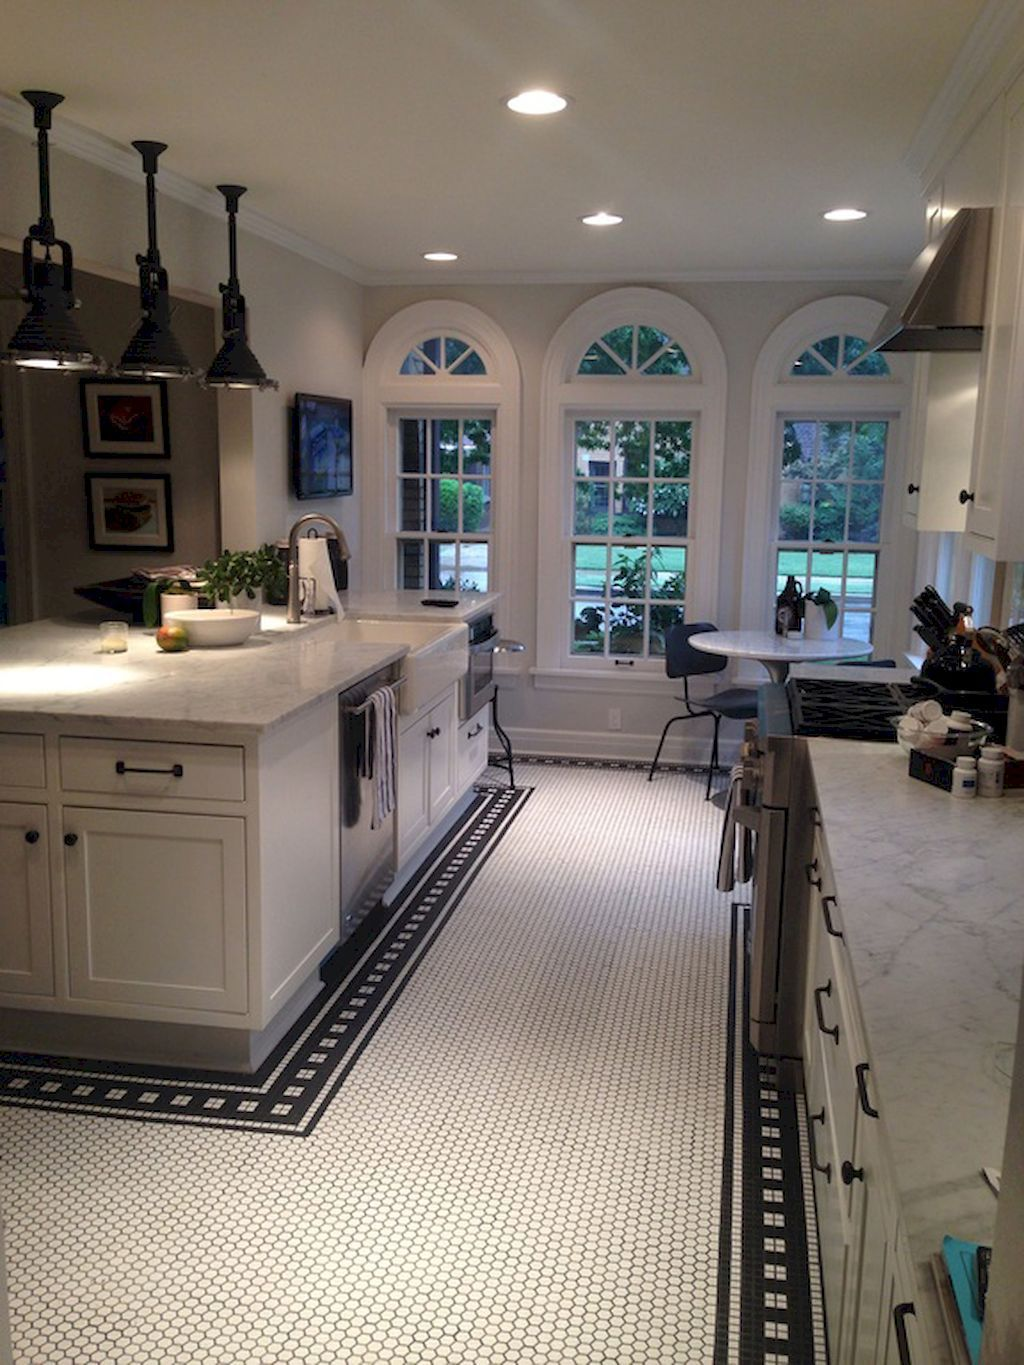 70 Tile Floor Farmhouse Kitchen Decor Ideas 13 Small Kitchen Decor Kitchen Floor Tile Kitchen Flooring